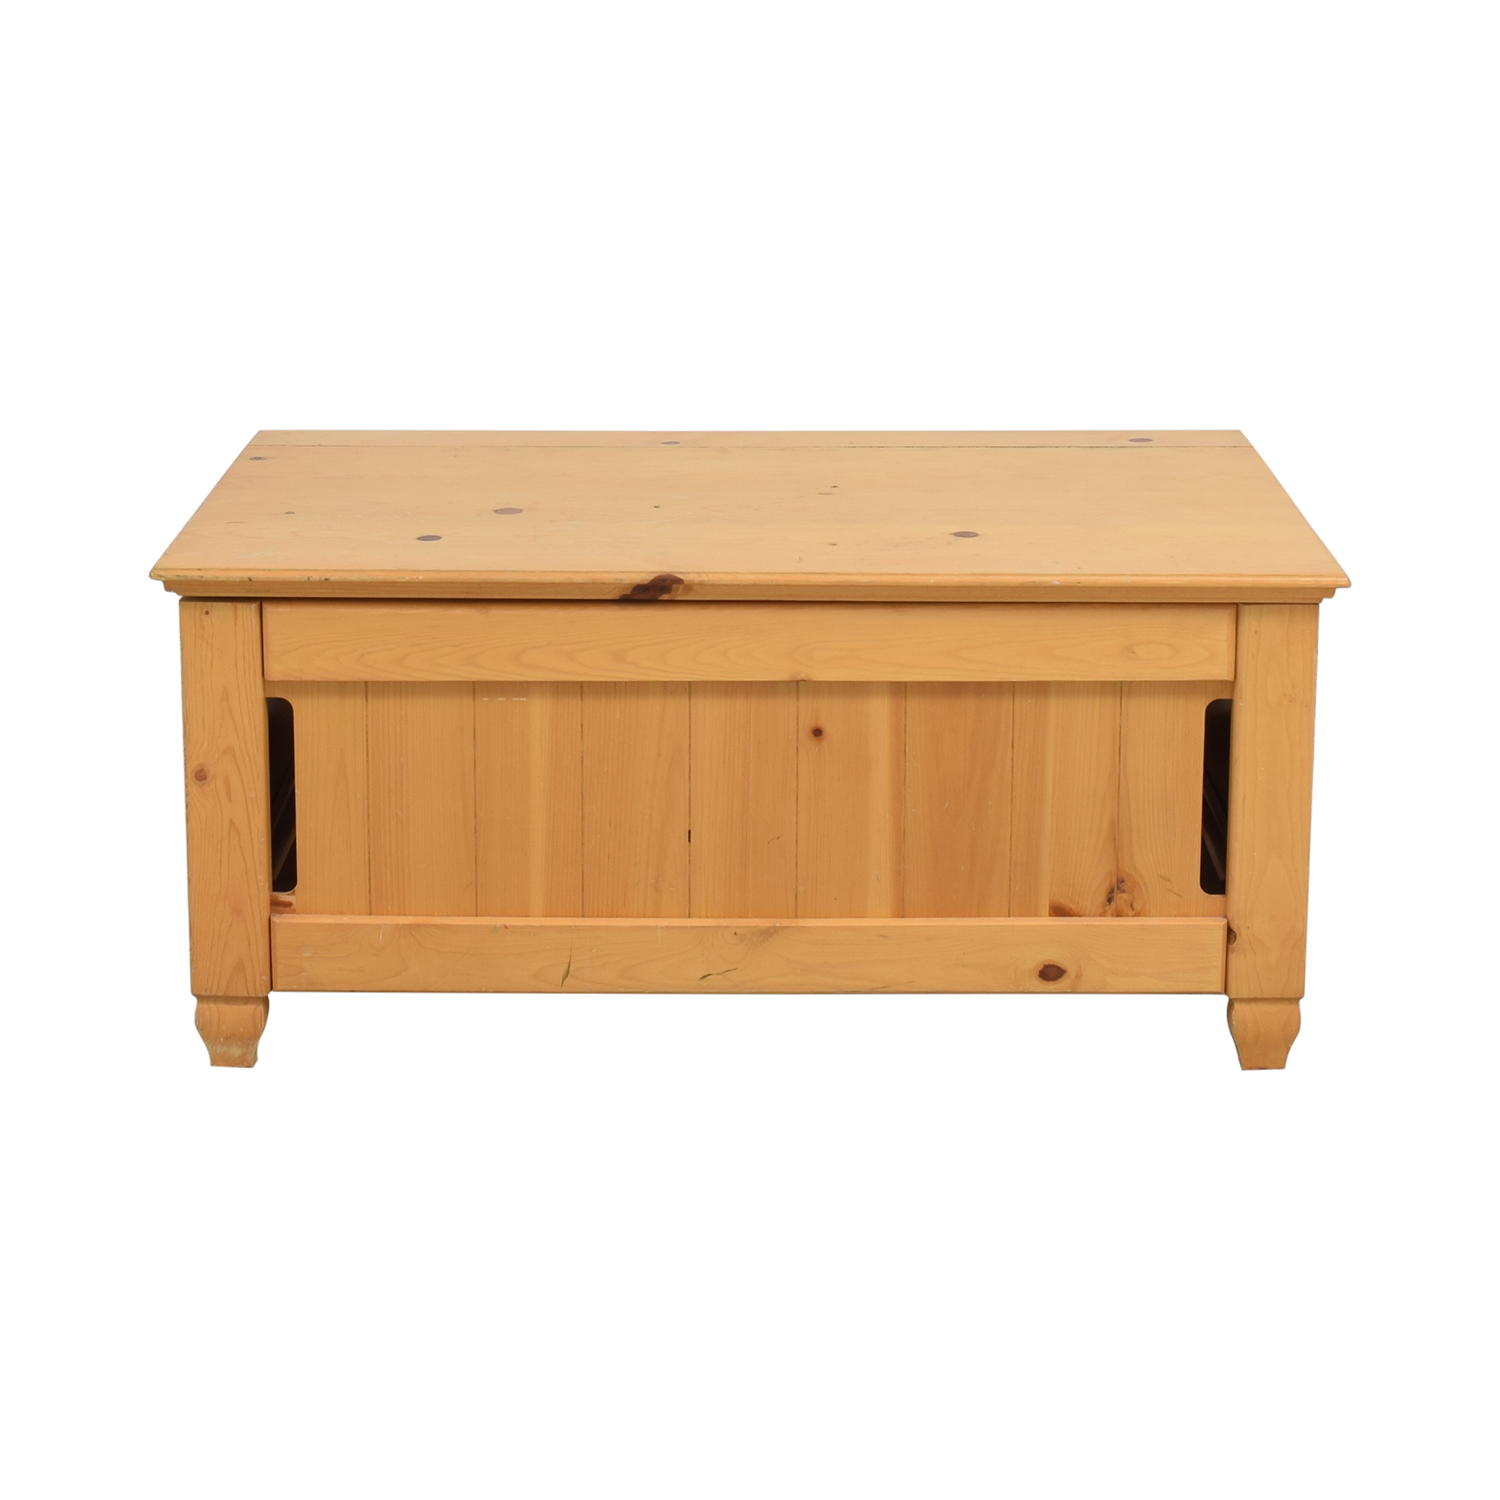 American Eagle Furniture American Eagle Furniture Chest for sale